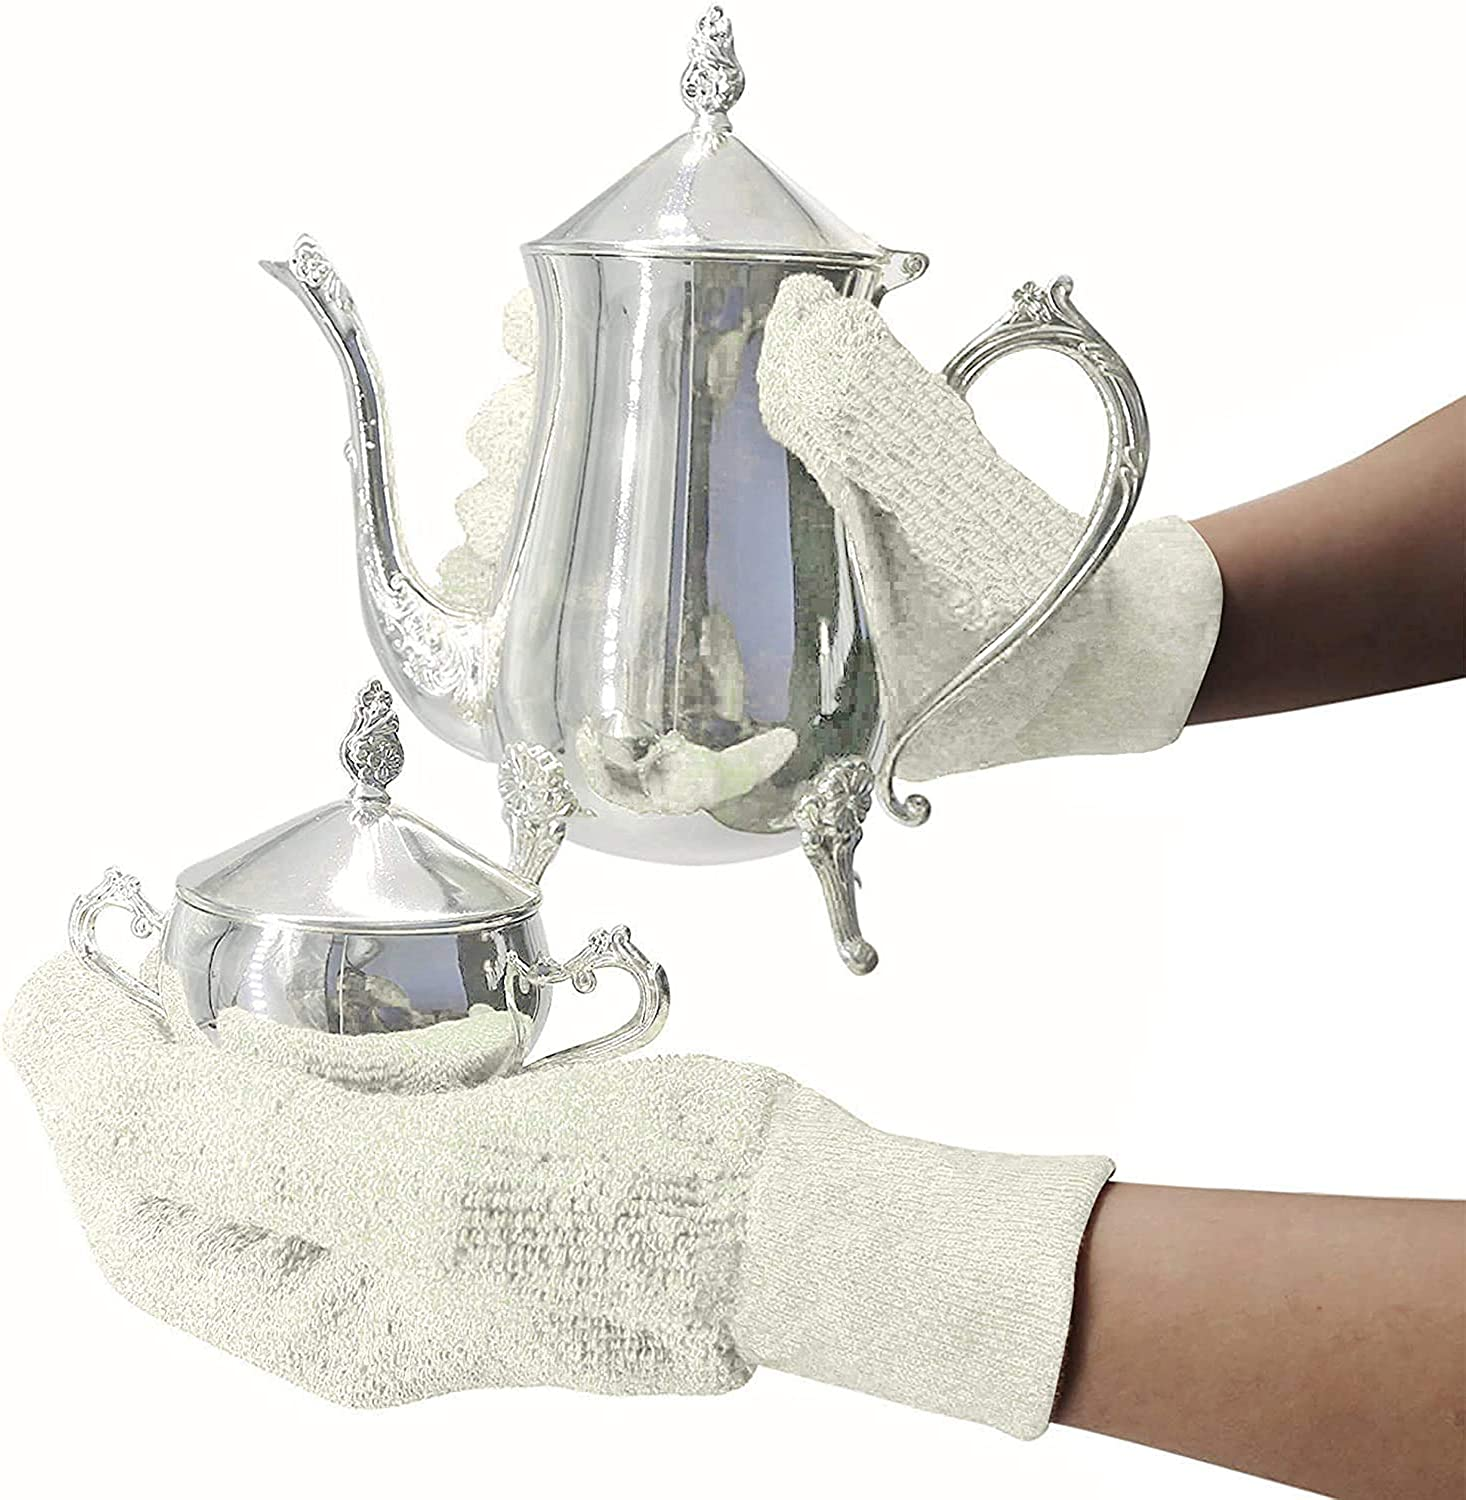 EvridWear Sterling Silver Polishing Cleaning Gloves with Terry Loop Cloth